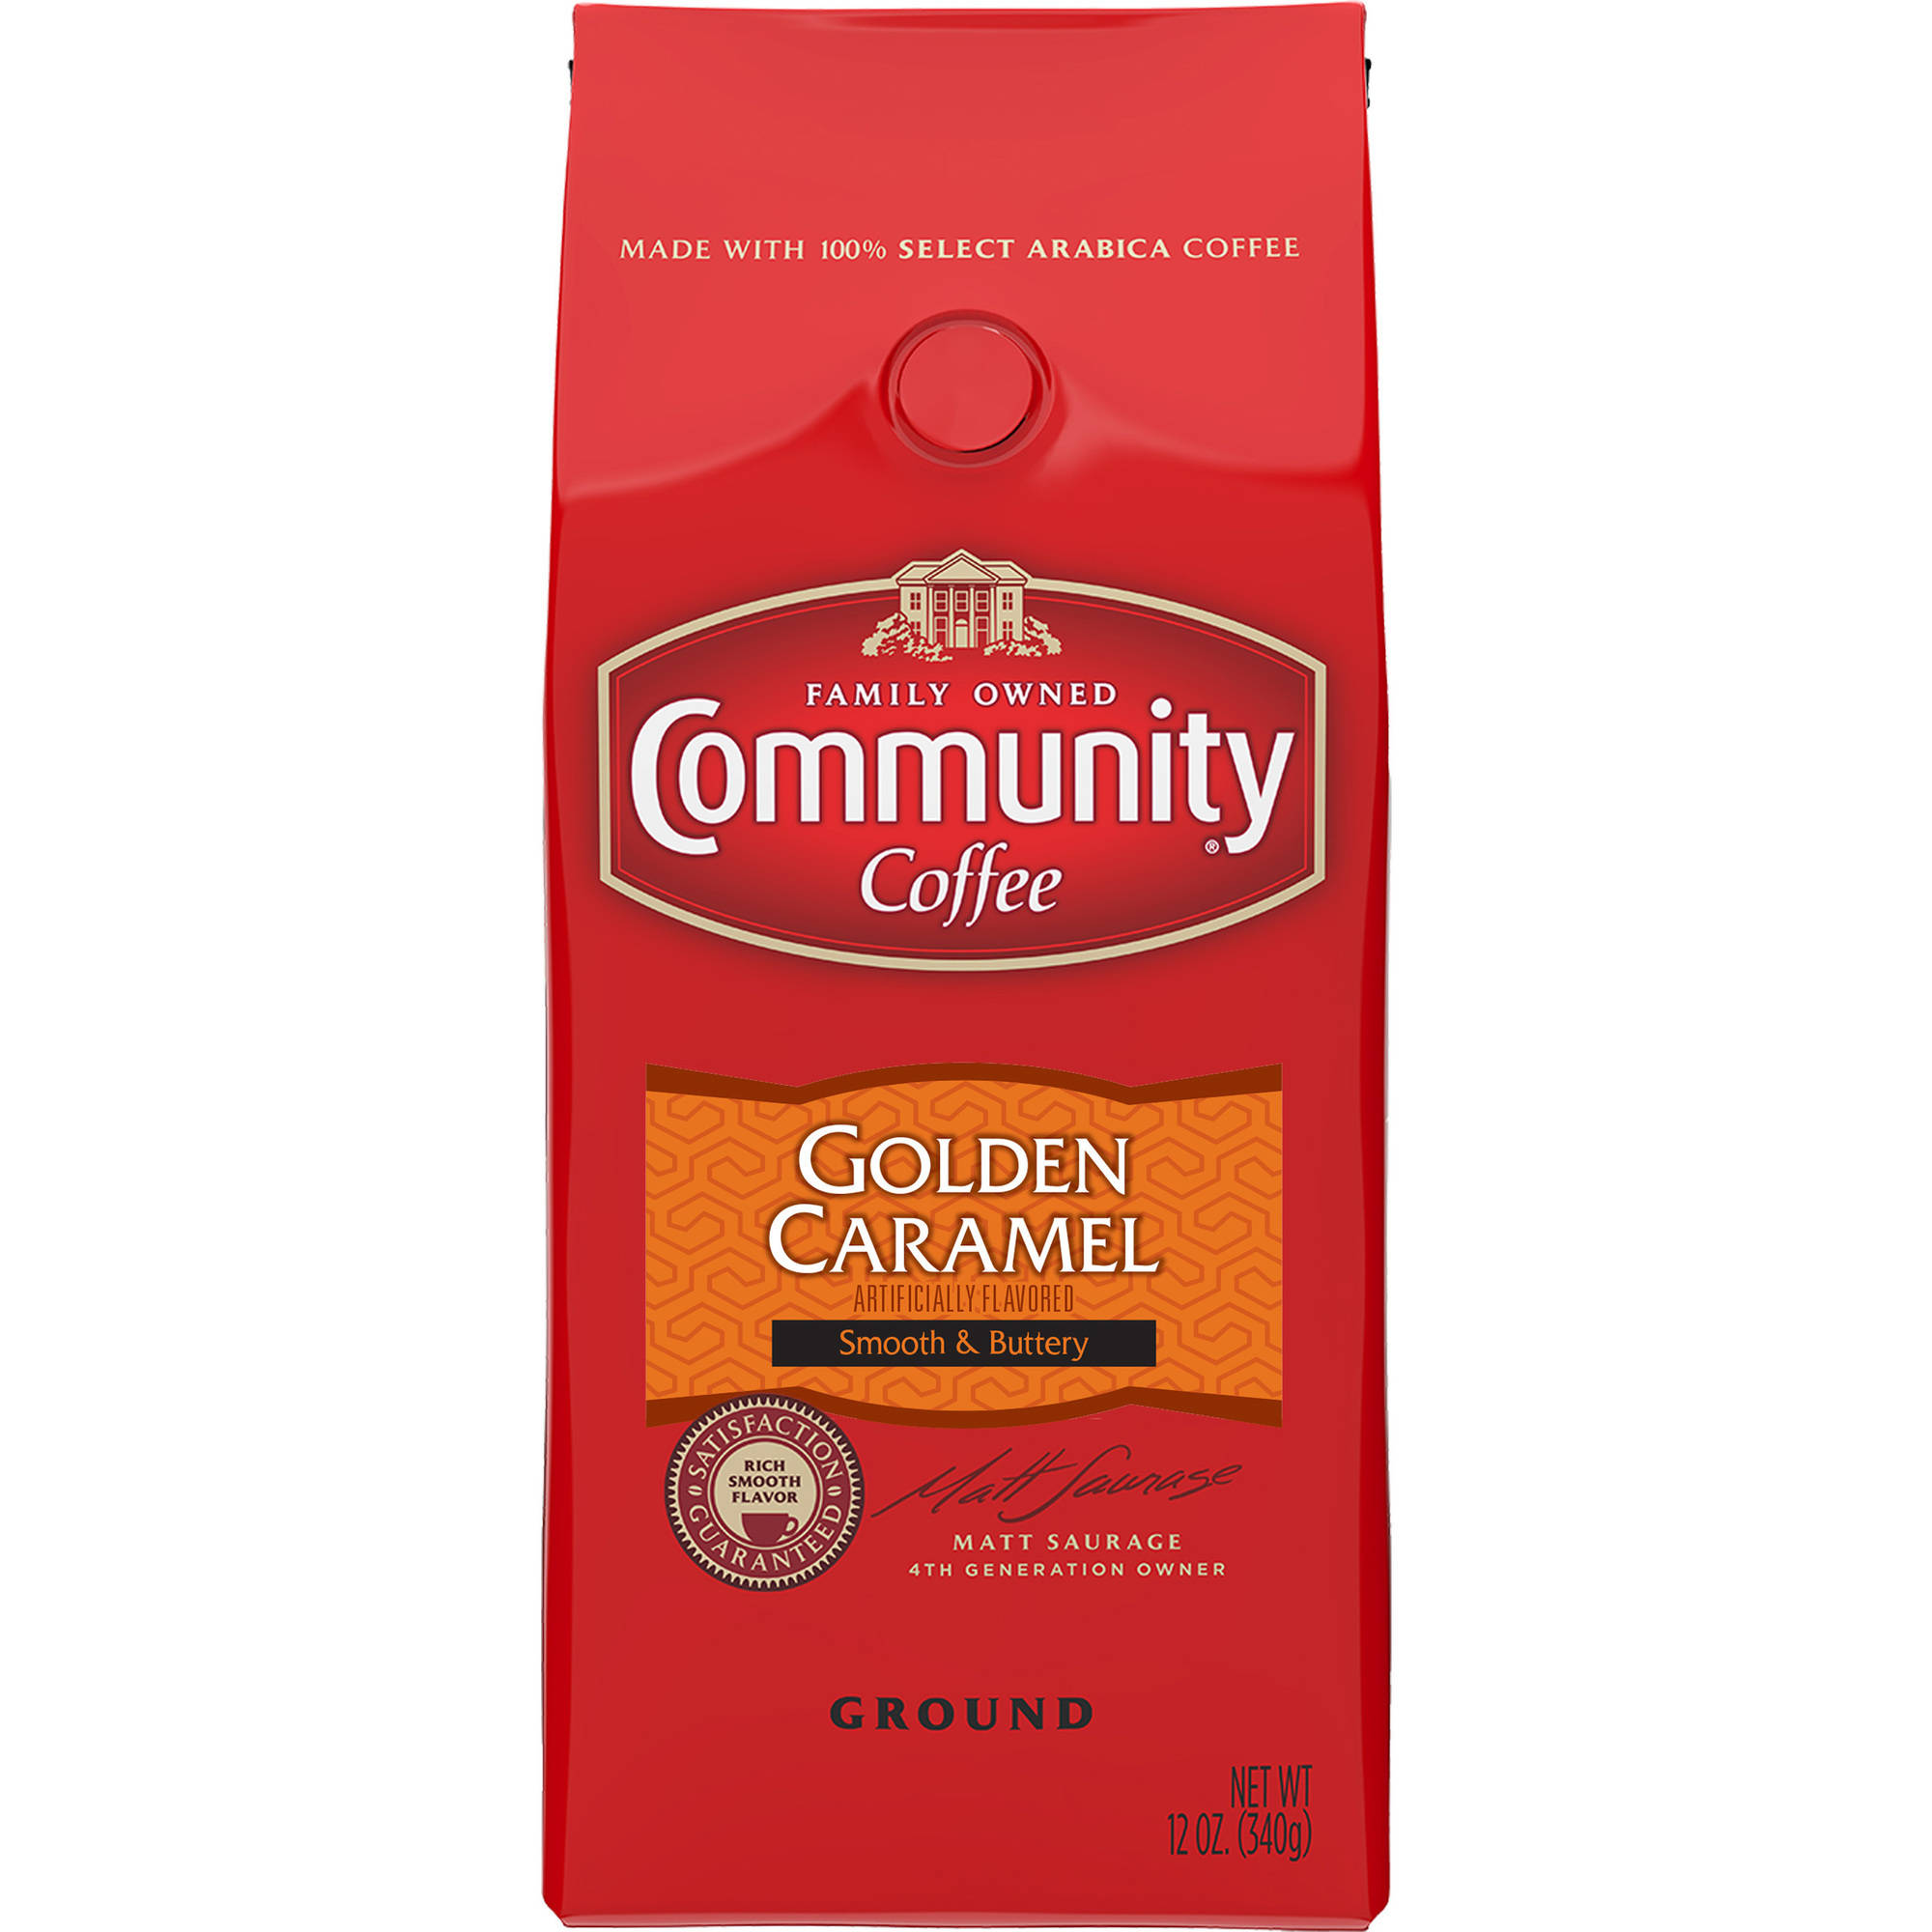 Community Coffee Golden Caramel Flavored Ground Coffee, 12 oz